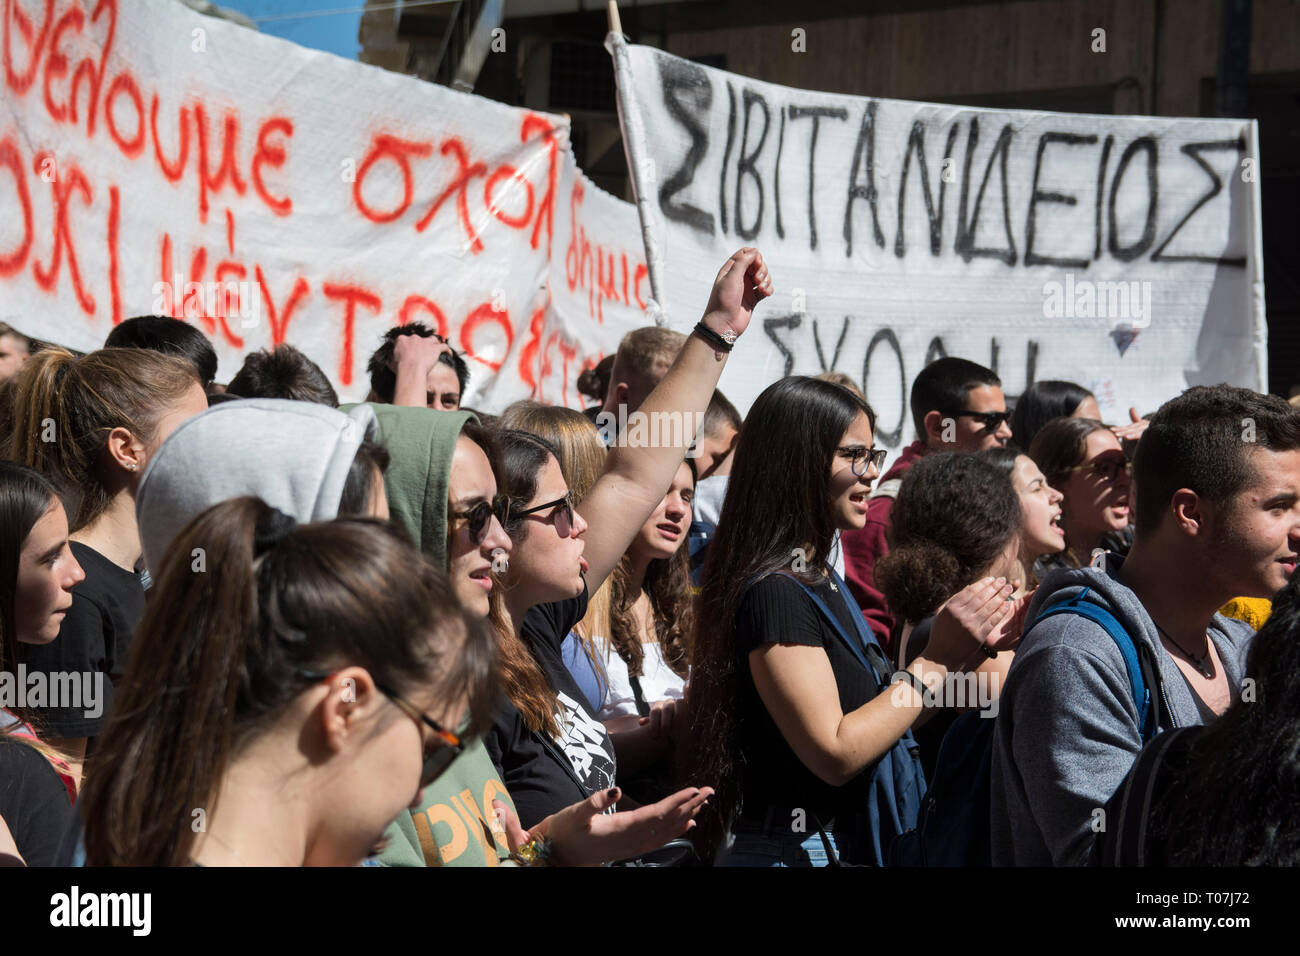 Students rally holding banners and shout slogans against the